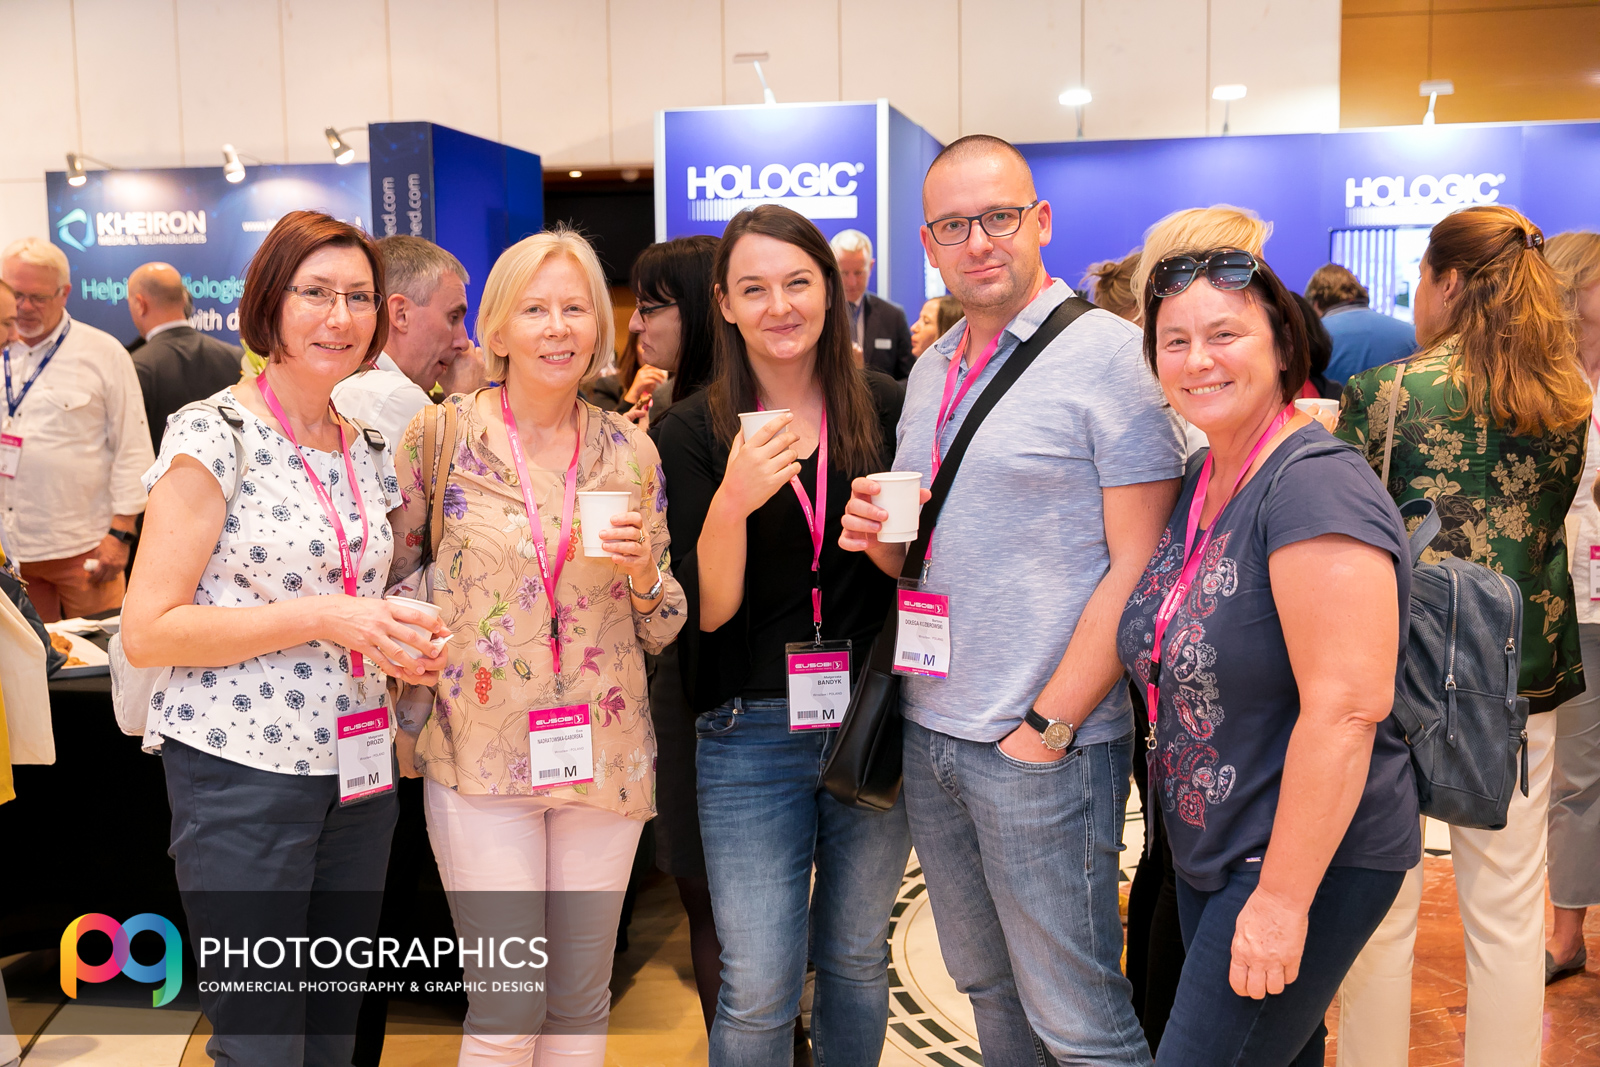 Conference-event-photography-glasgow-edinburgh-athens-8.jpg